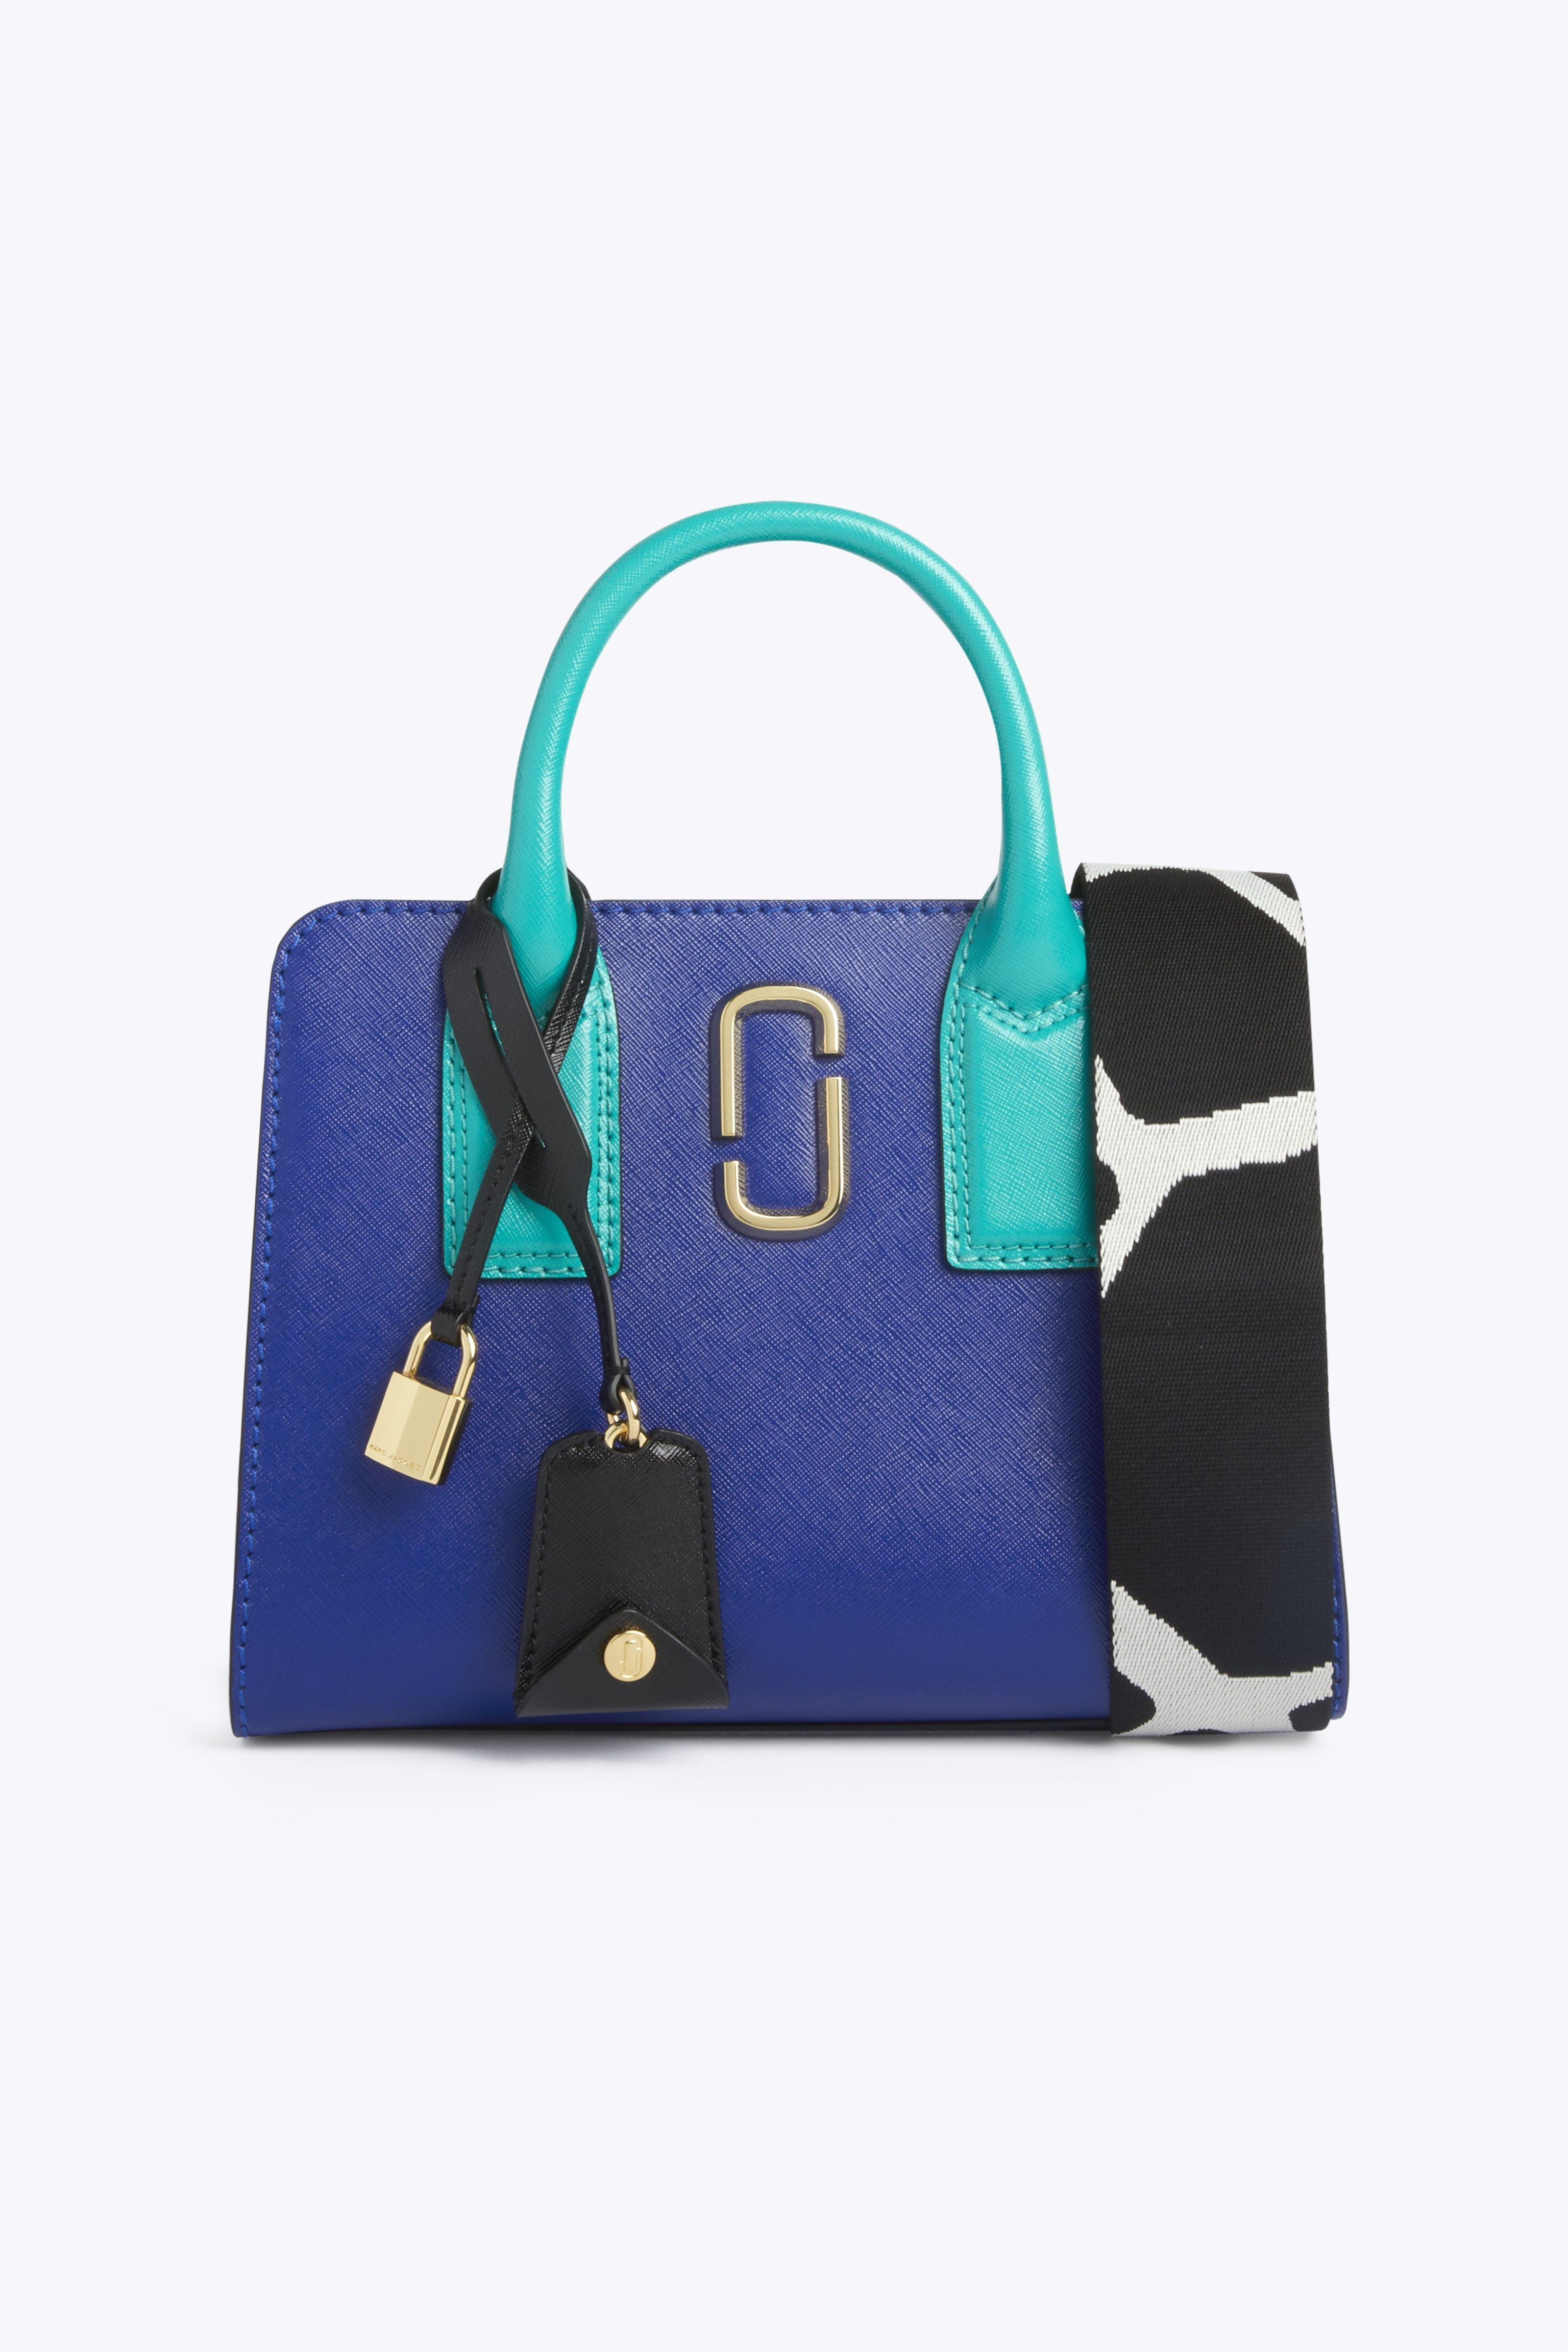 Little Big Shot Leather Tote - Blue, Academy Blue Multi